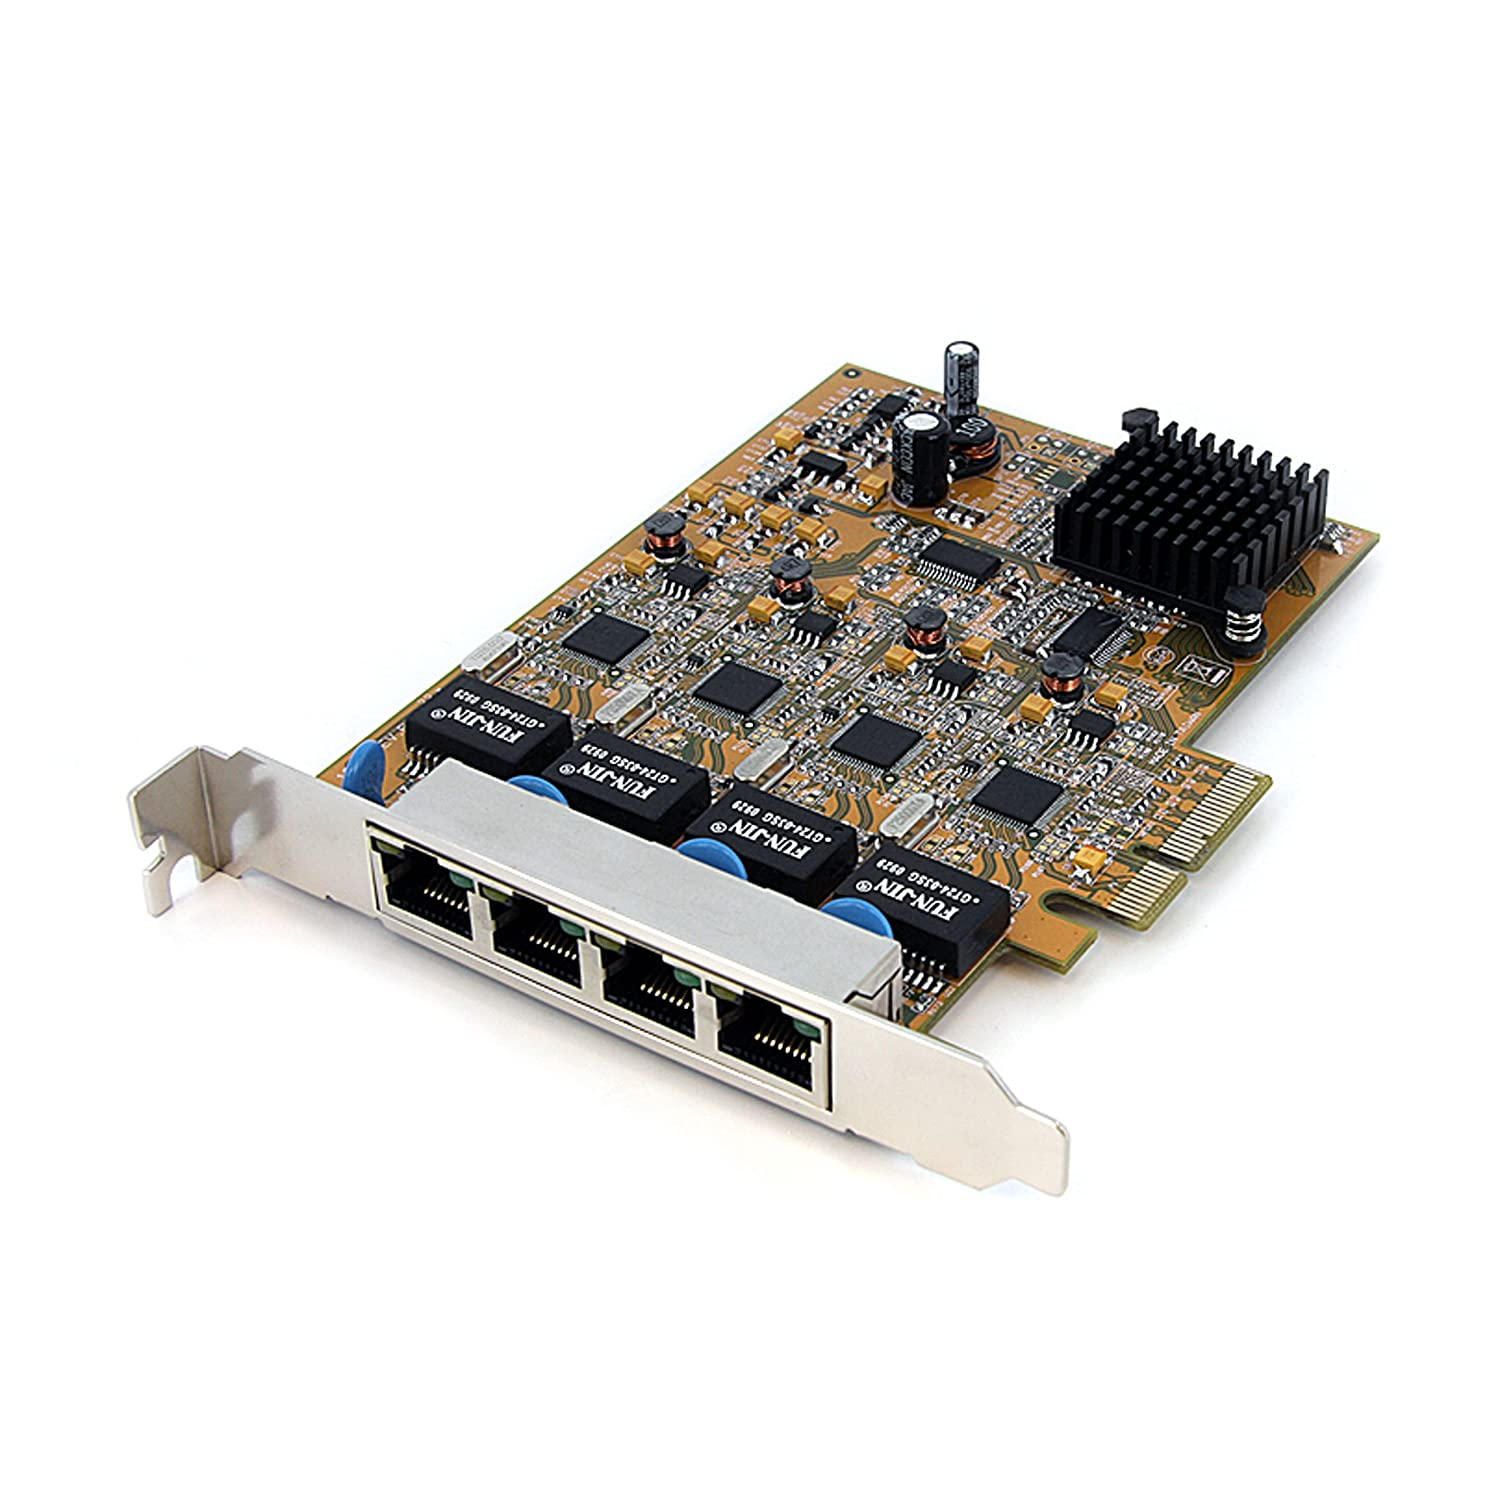 StarTech.com 4 Port PCI Express Gigabit Ethernet NIC Network Adapter Card (ST1000SPEX4)